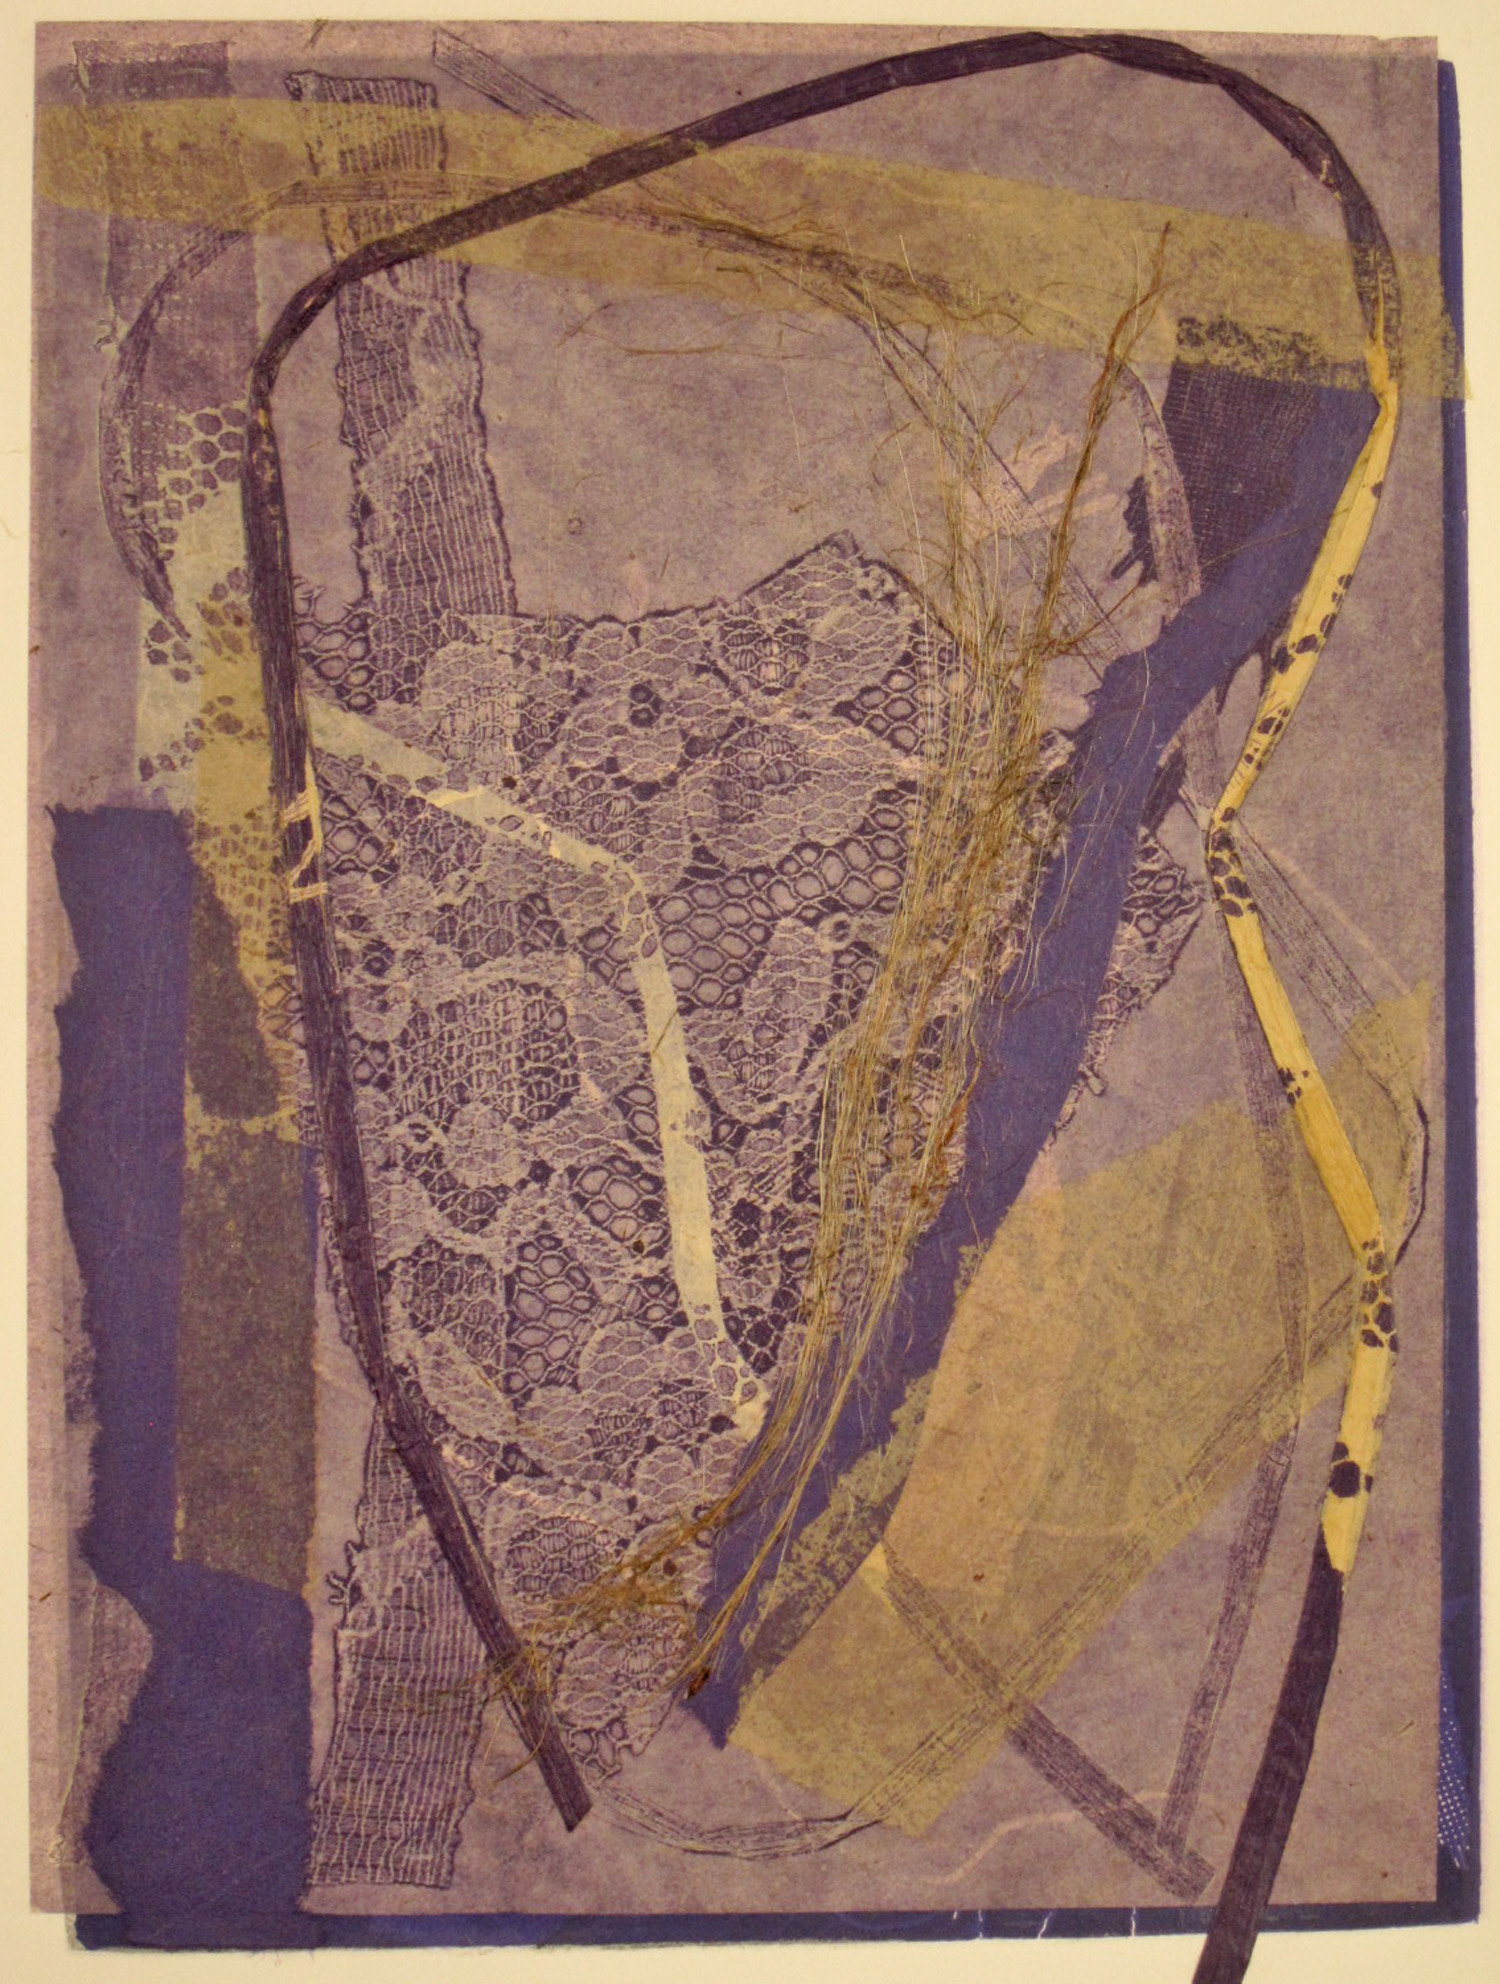 Nuances monotype, michelle lindblom, visual artist, collage, mixed media, printmaking, contemporary, nature